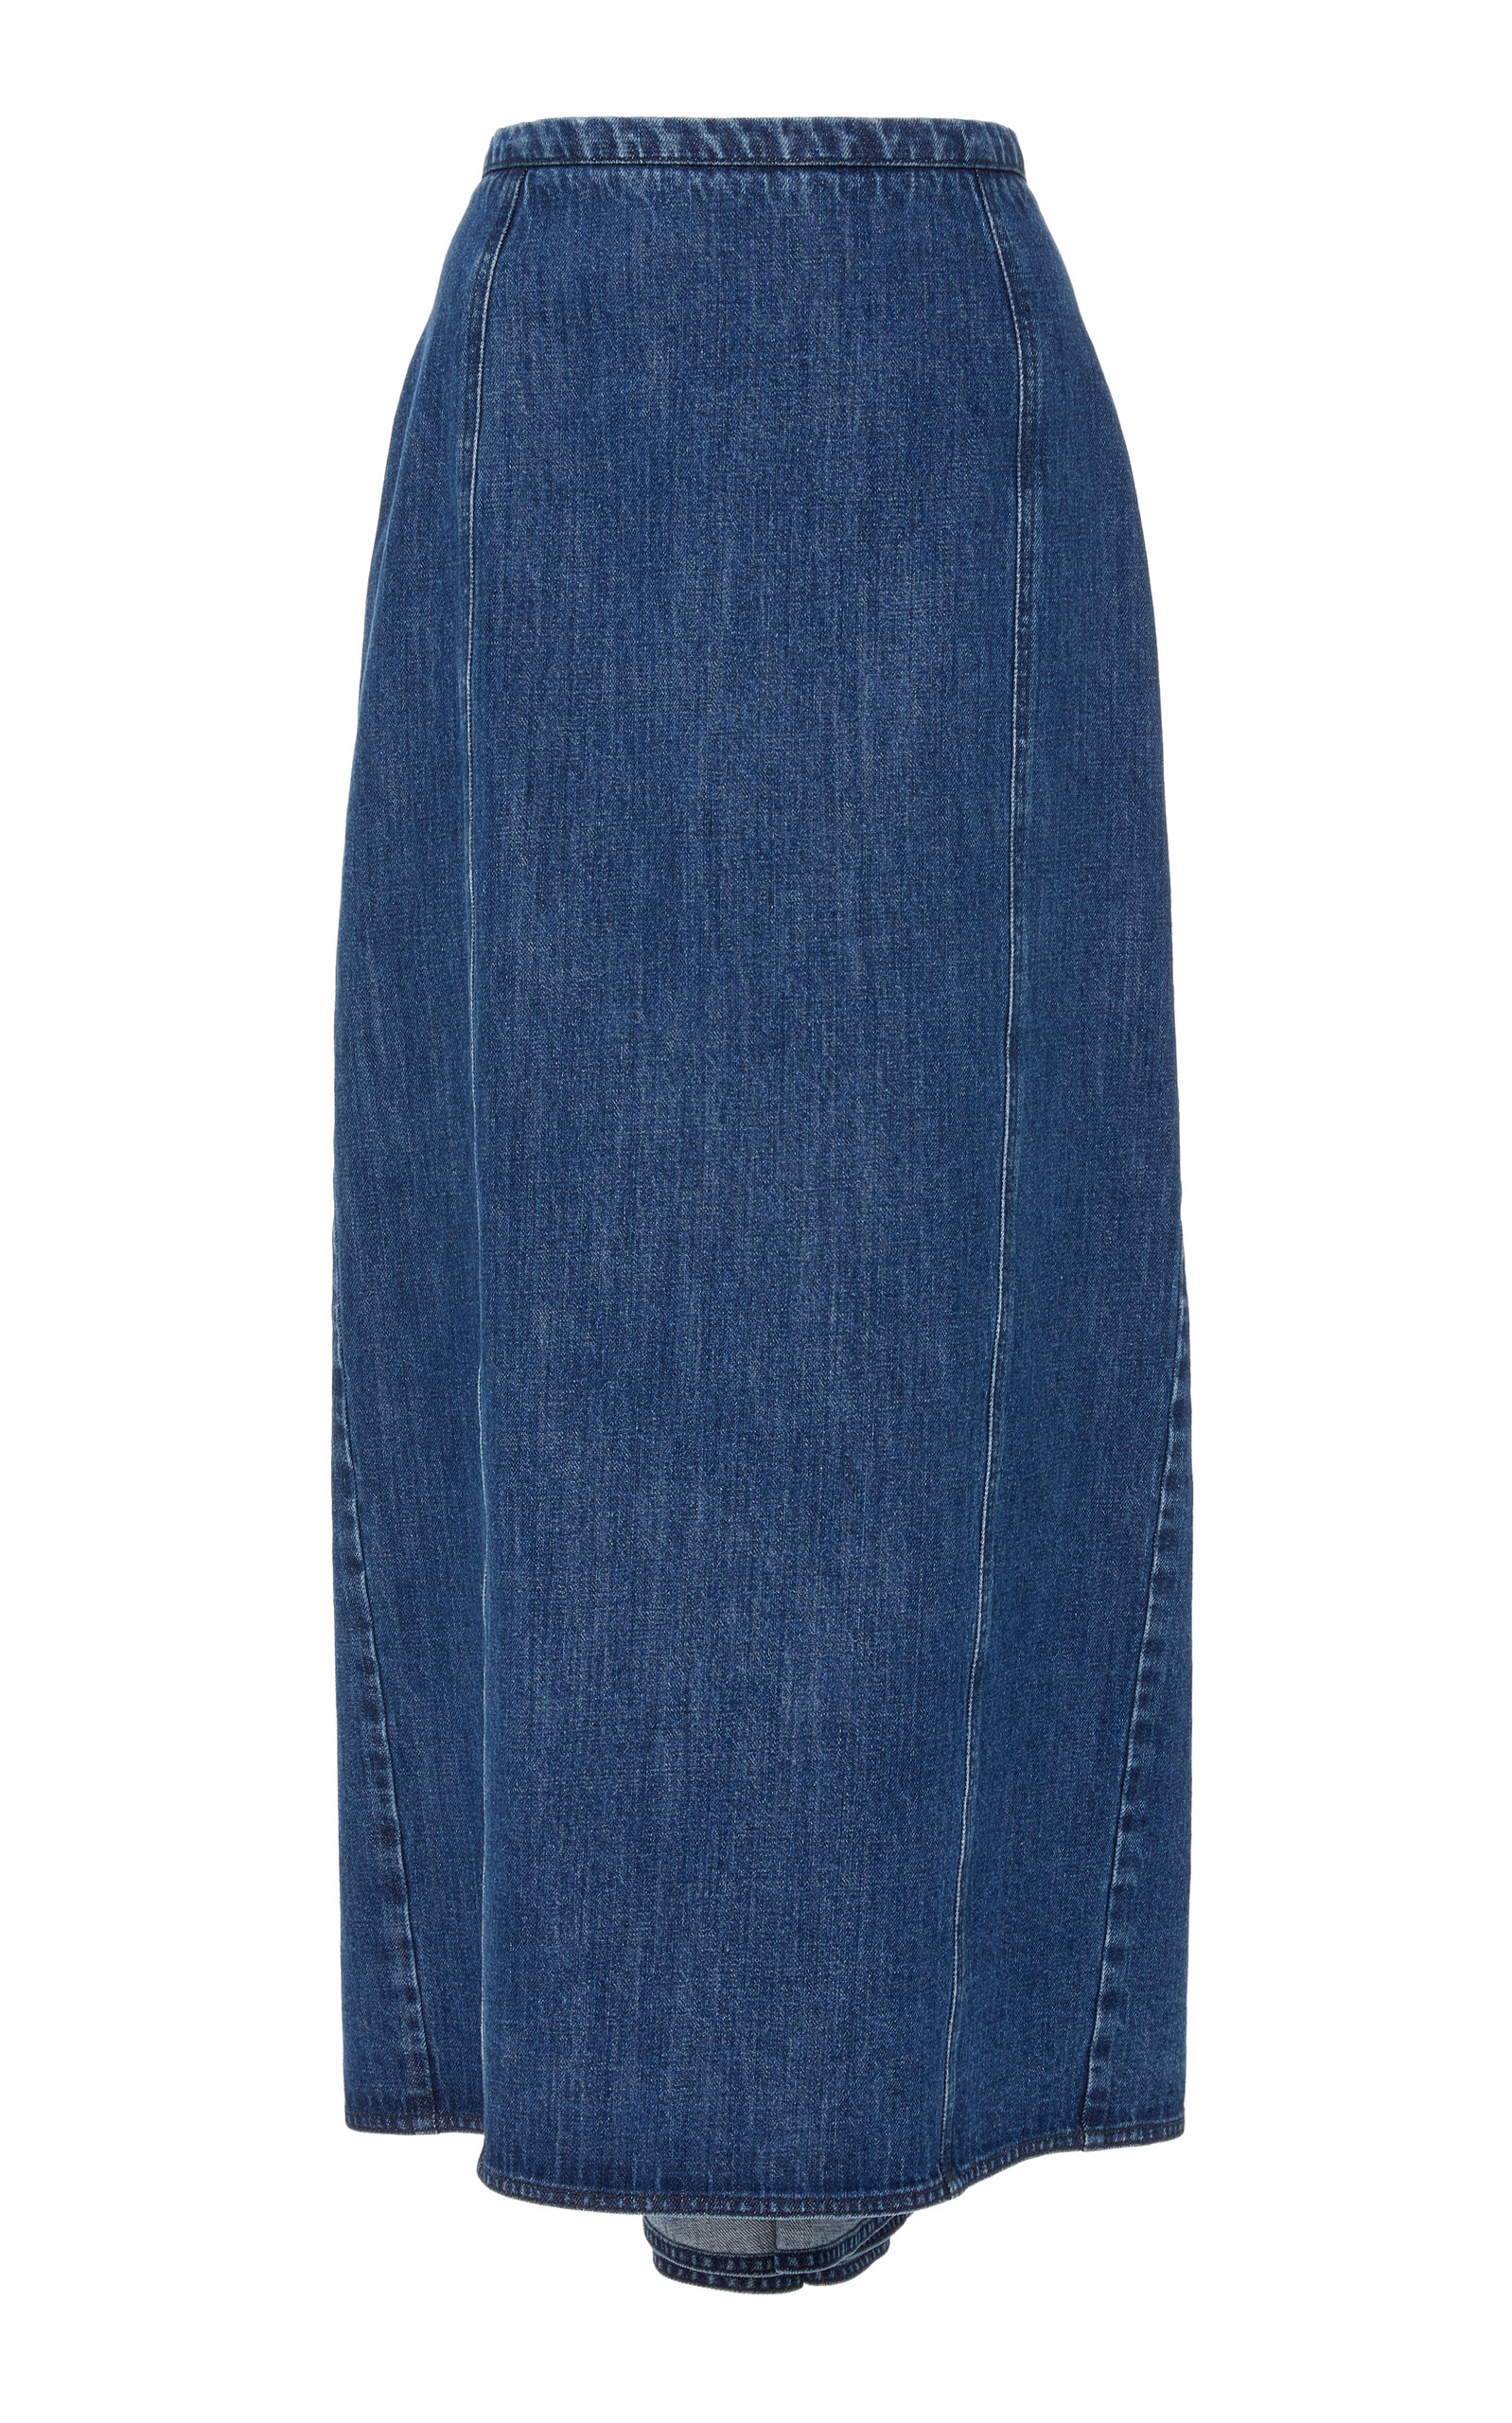 MICHAEL KORS High-Rise Denim Midi Skirt in Blue